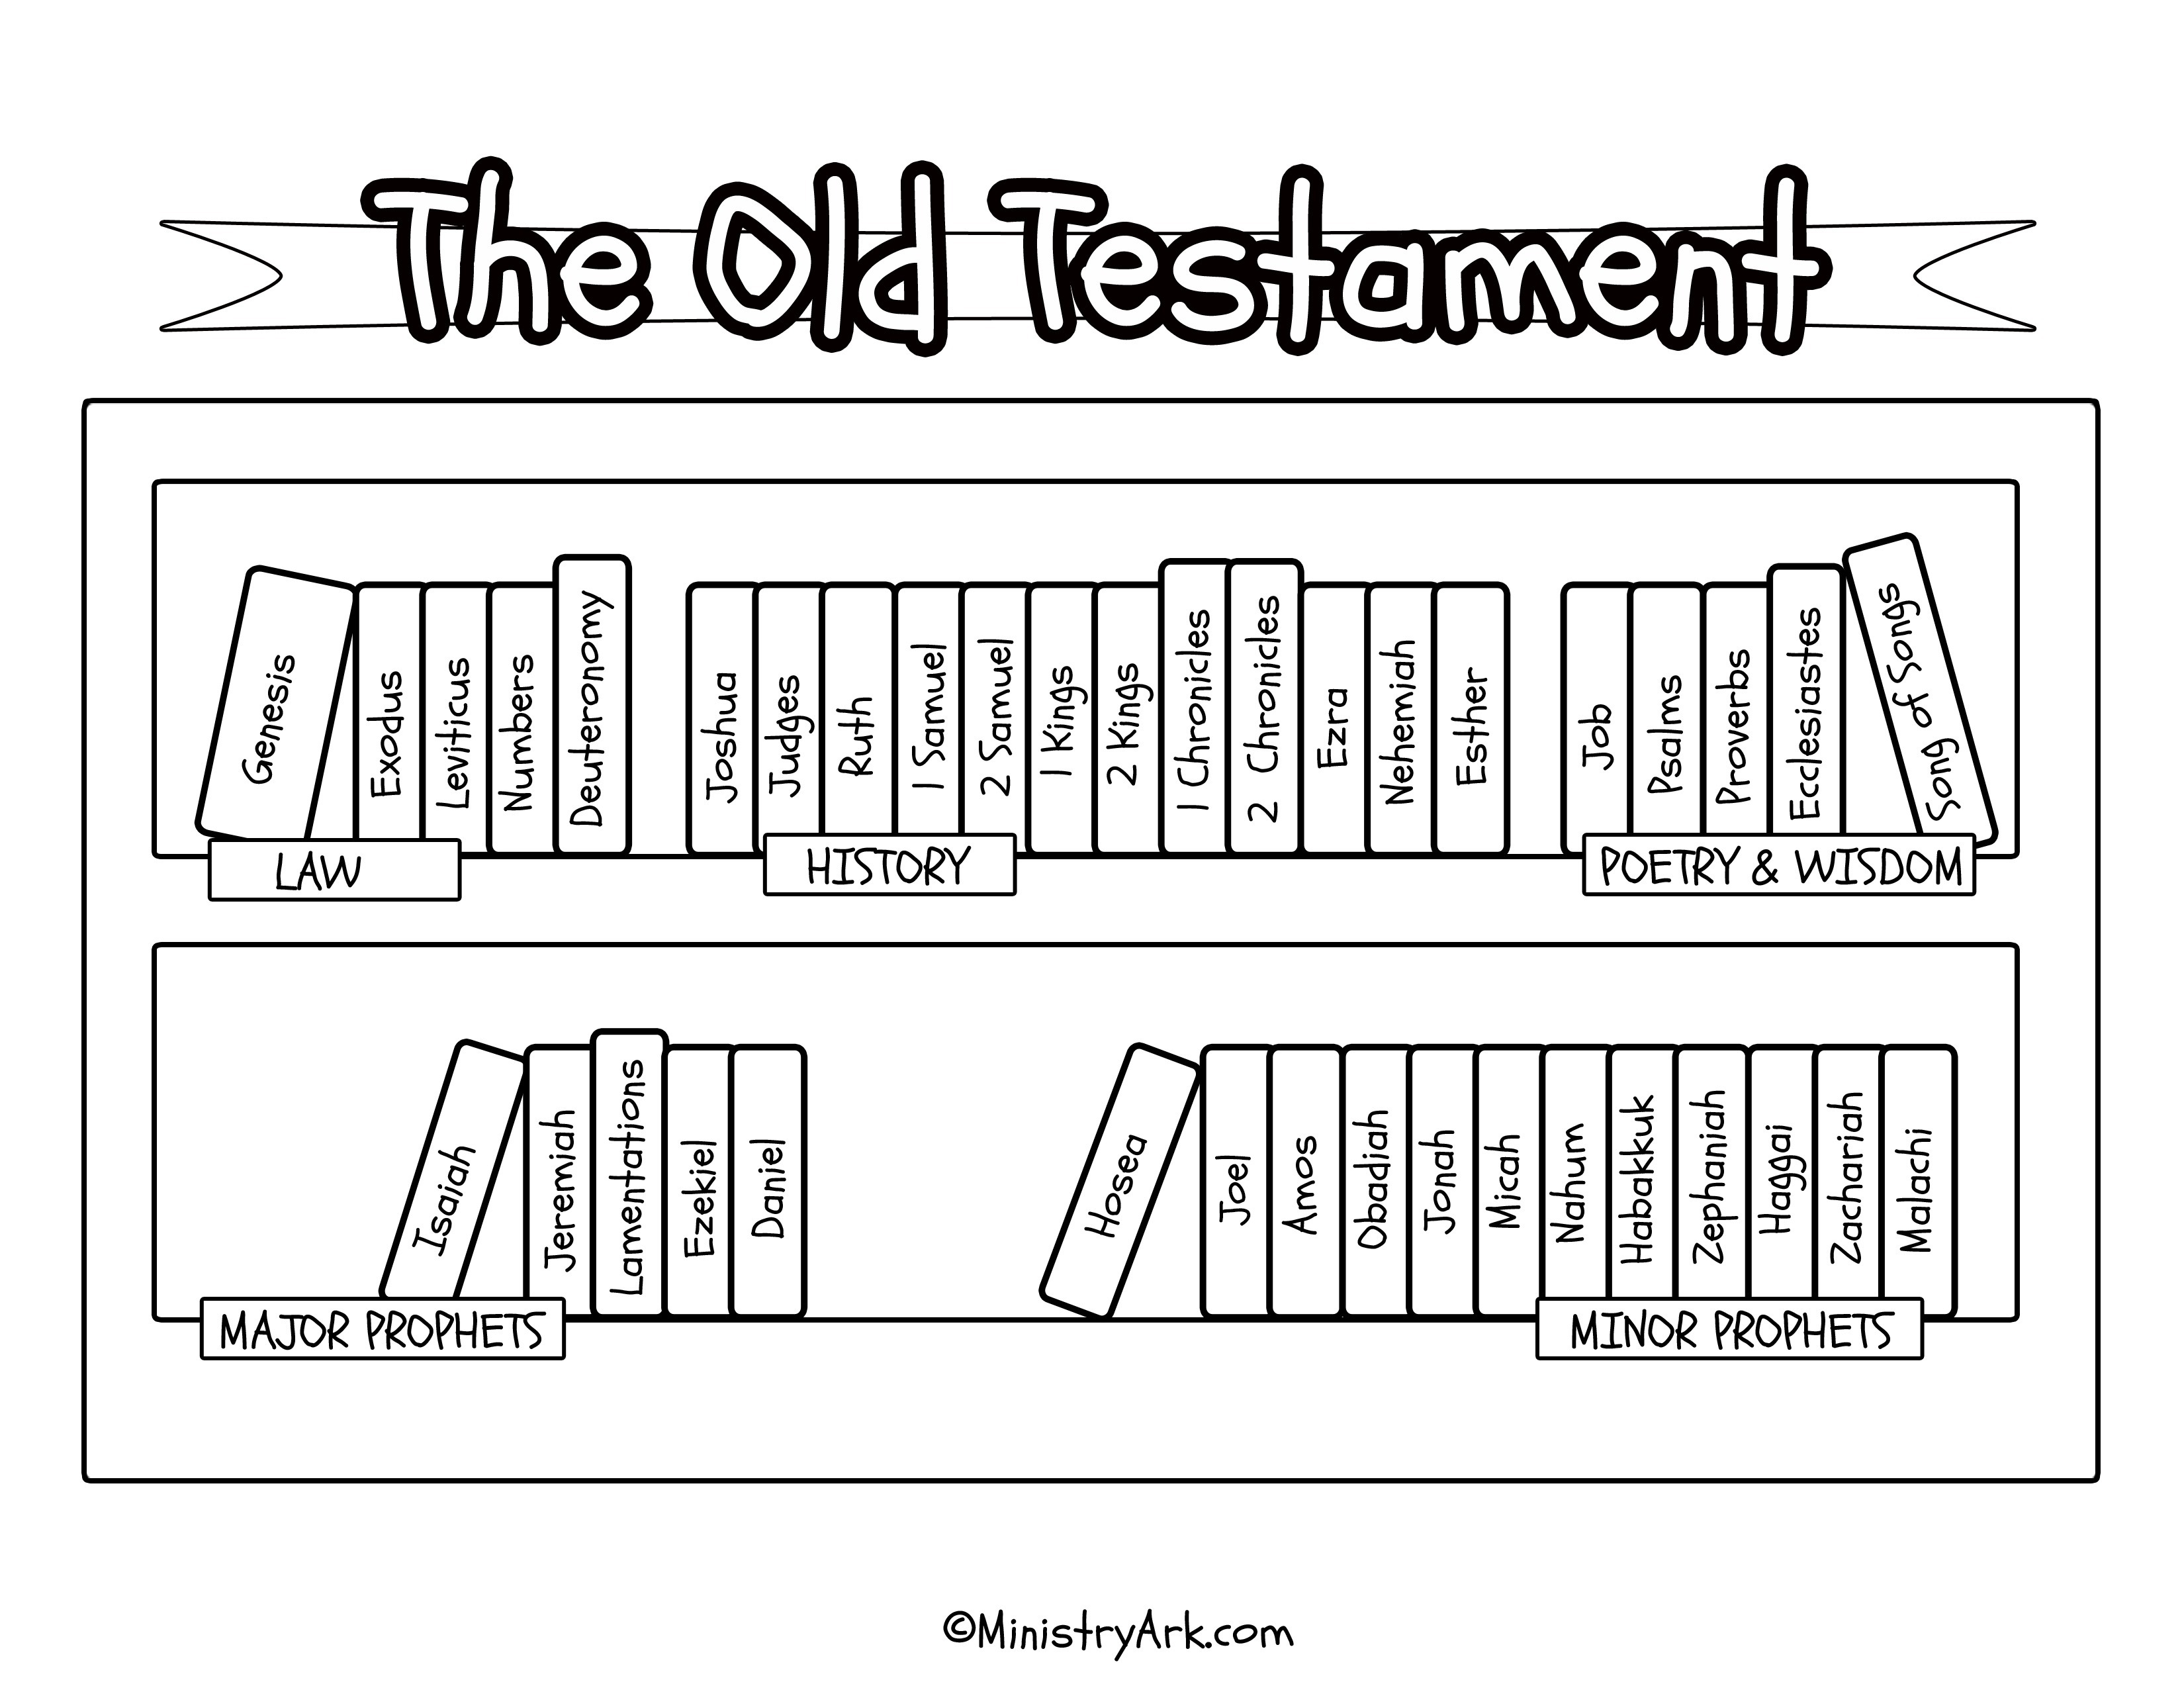 Books of the New testament coloring page for preschoolers and ... | 2550x3300